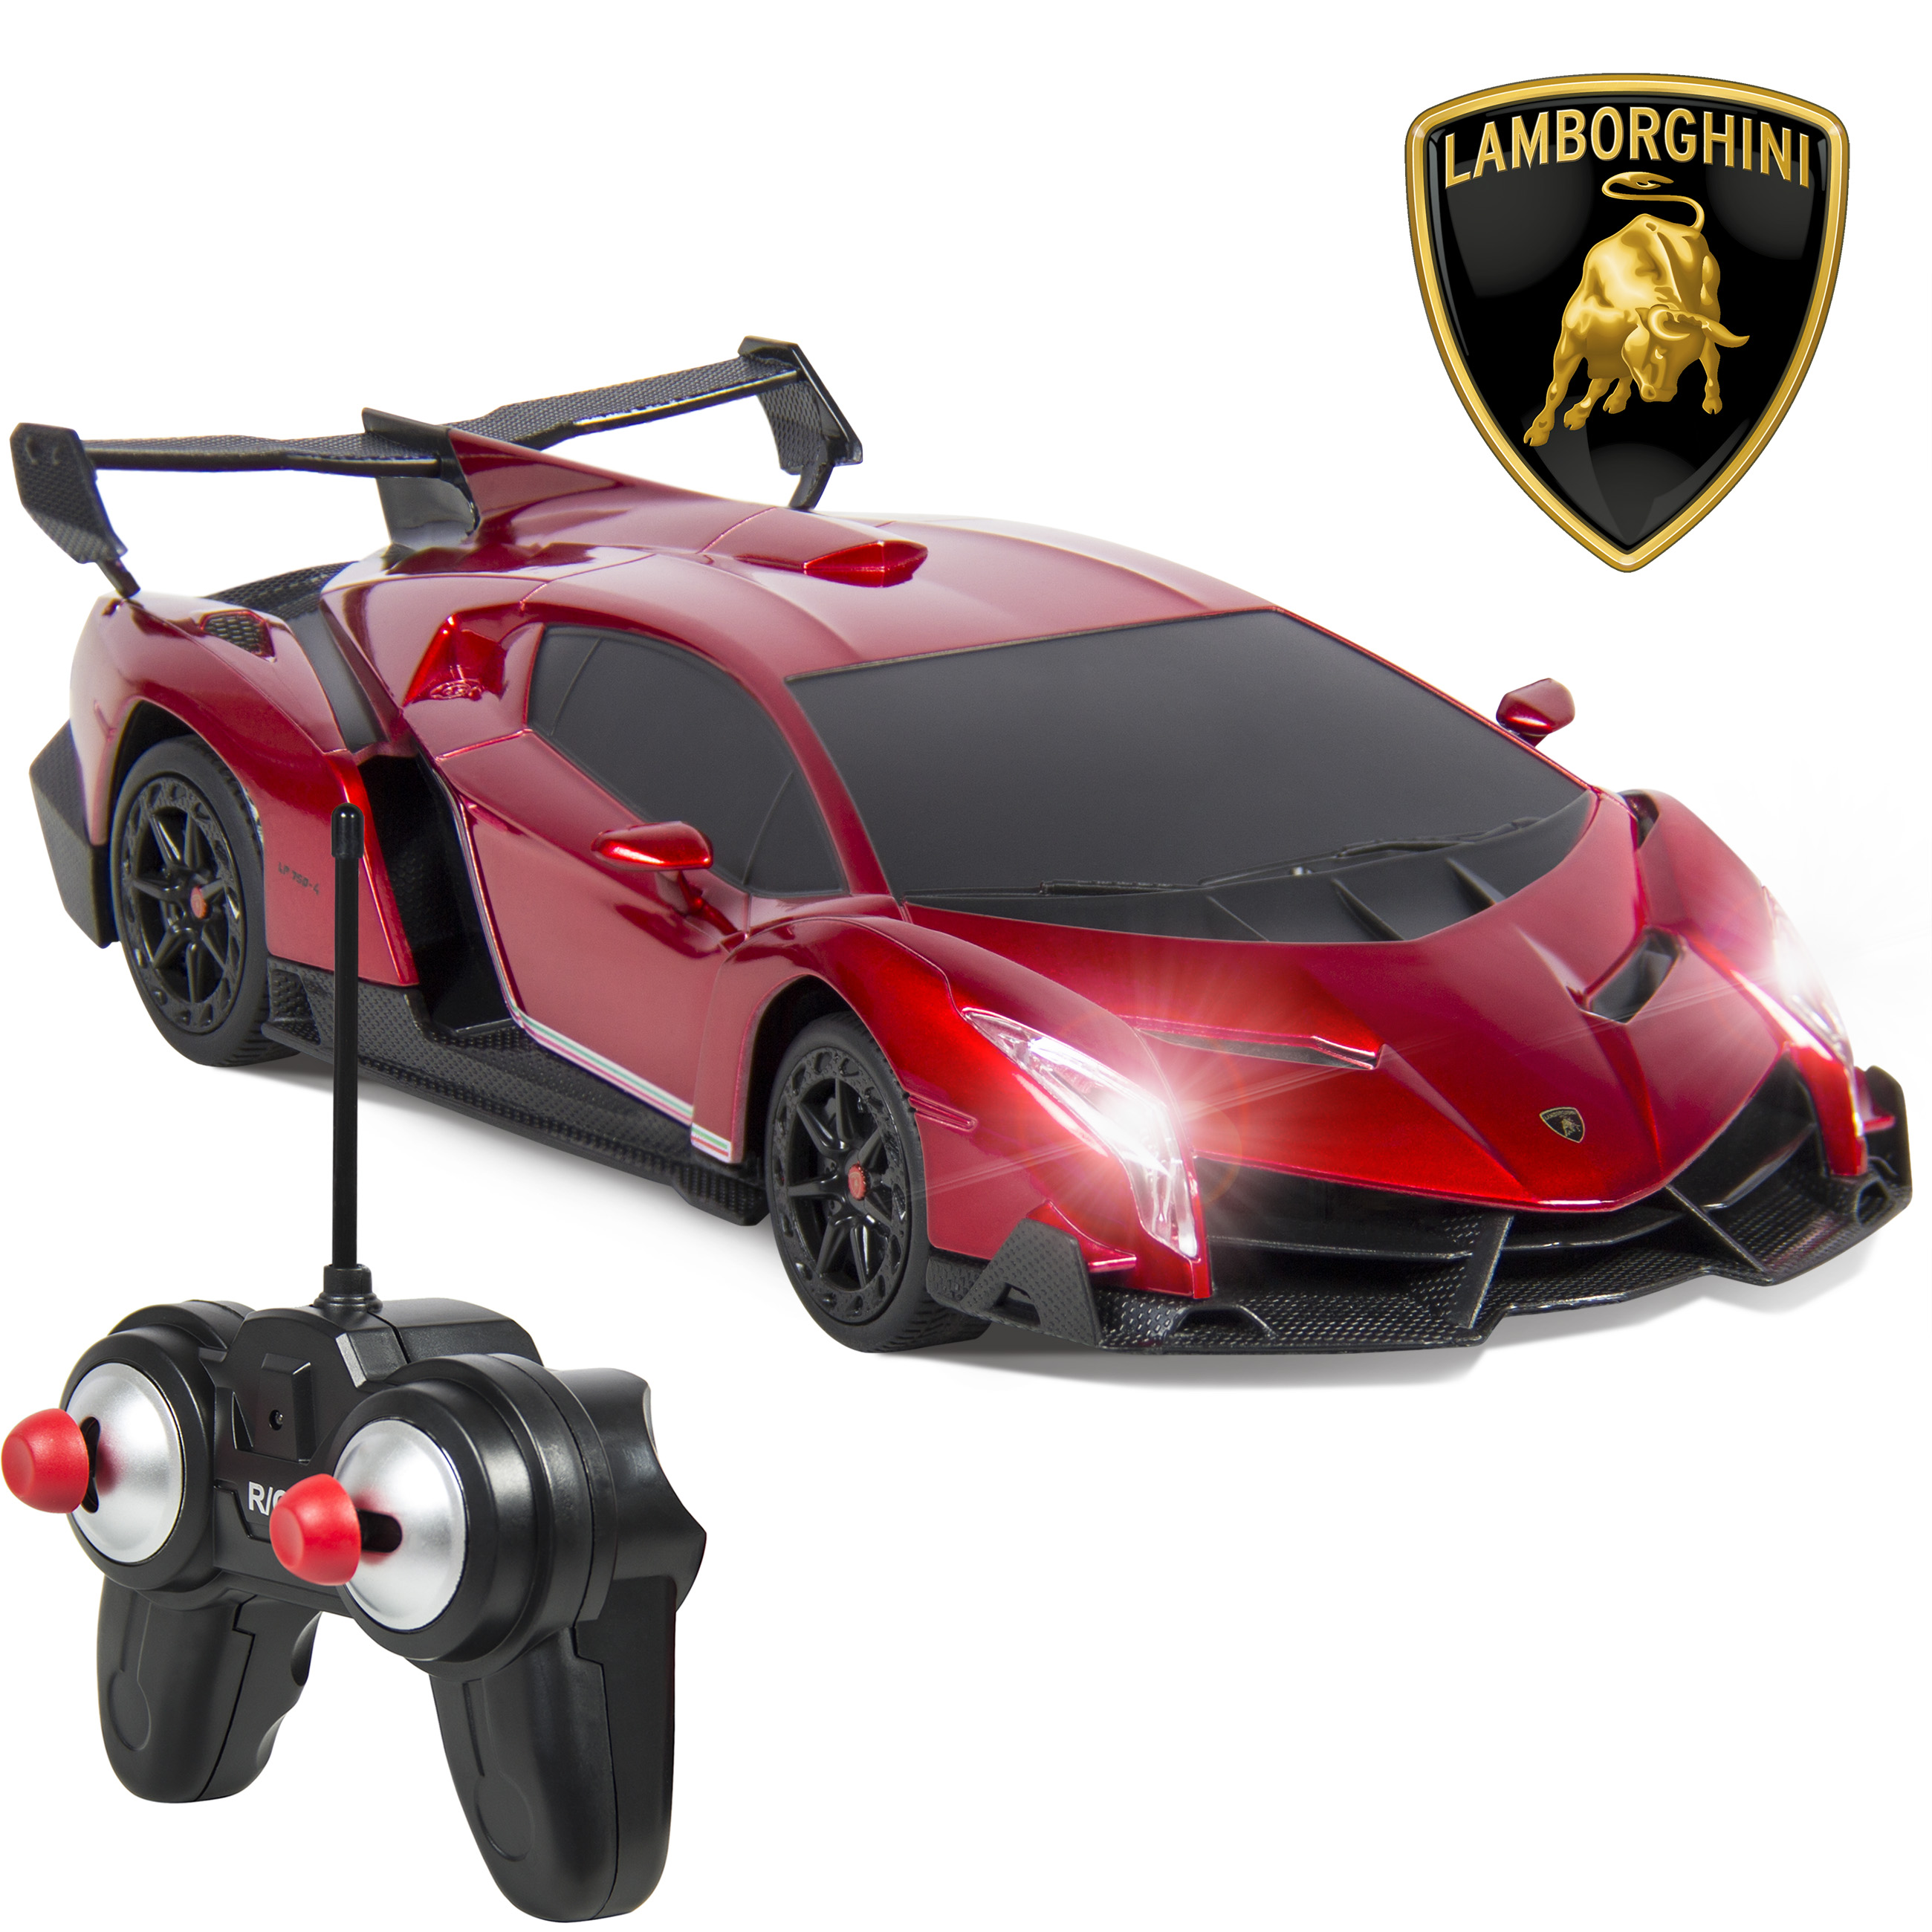 Best Choice Products 1/24 Officially Licensed RC Lamborghini Veneno Sport Racing Car w/ 27MHz Remote Control, Head and Taillights, Shock Suspension, Fine Tune Adjustment - Red